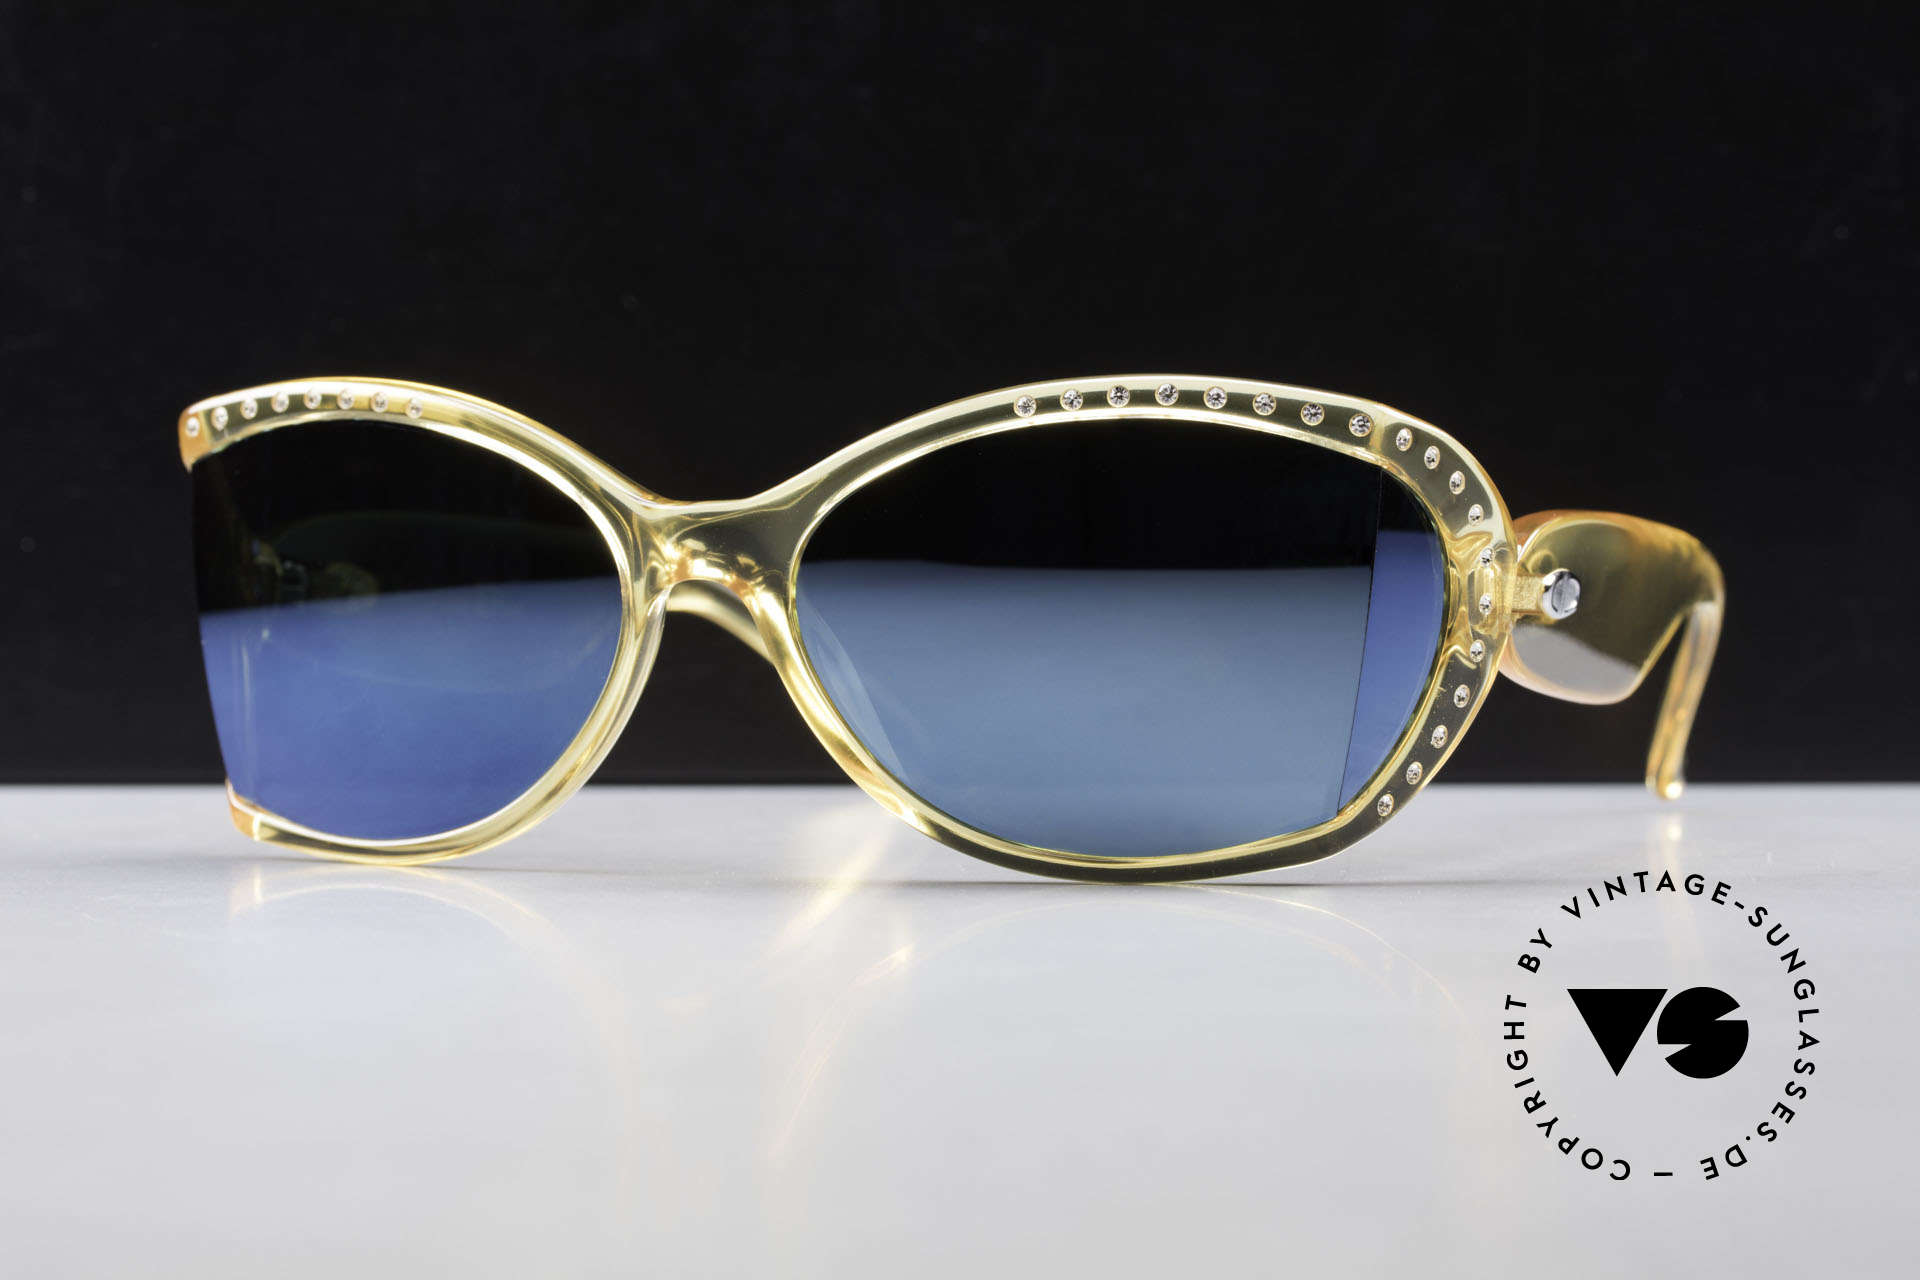 Christian Dior 2439 80's Crystal Sunglasses Gem, sophisticated sunglasses with blue-mirrored lenses, Made for Women